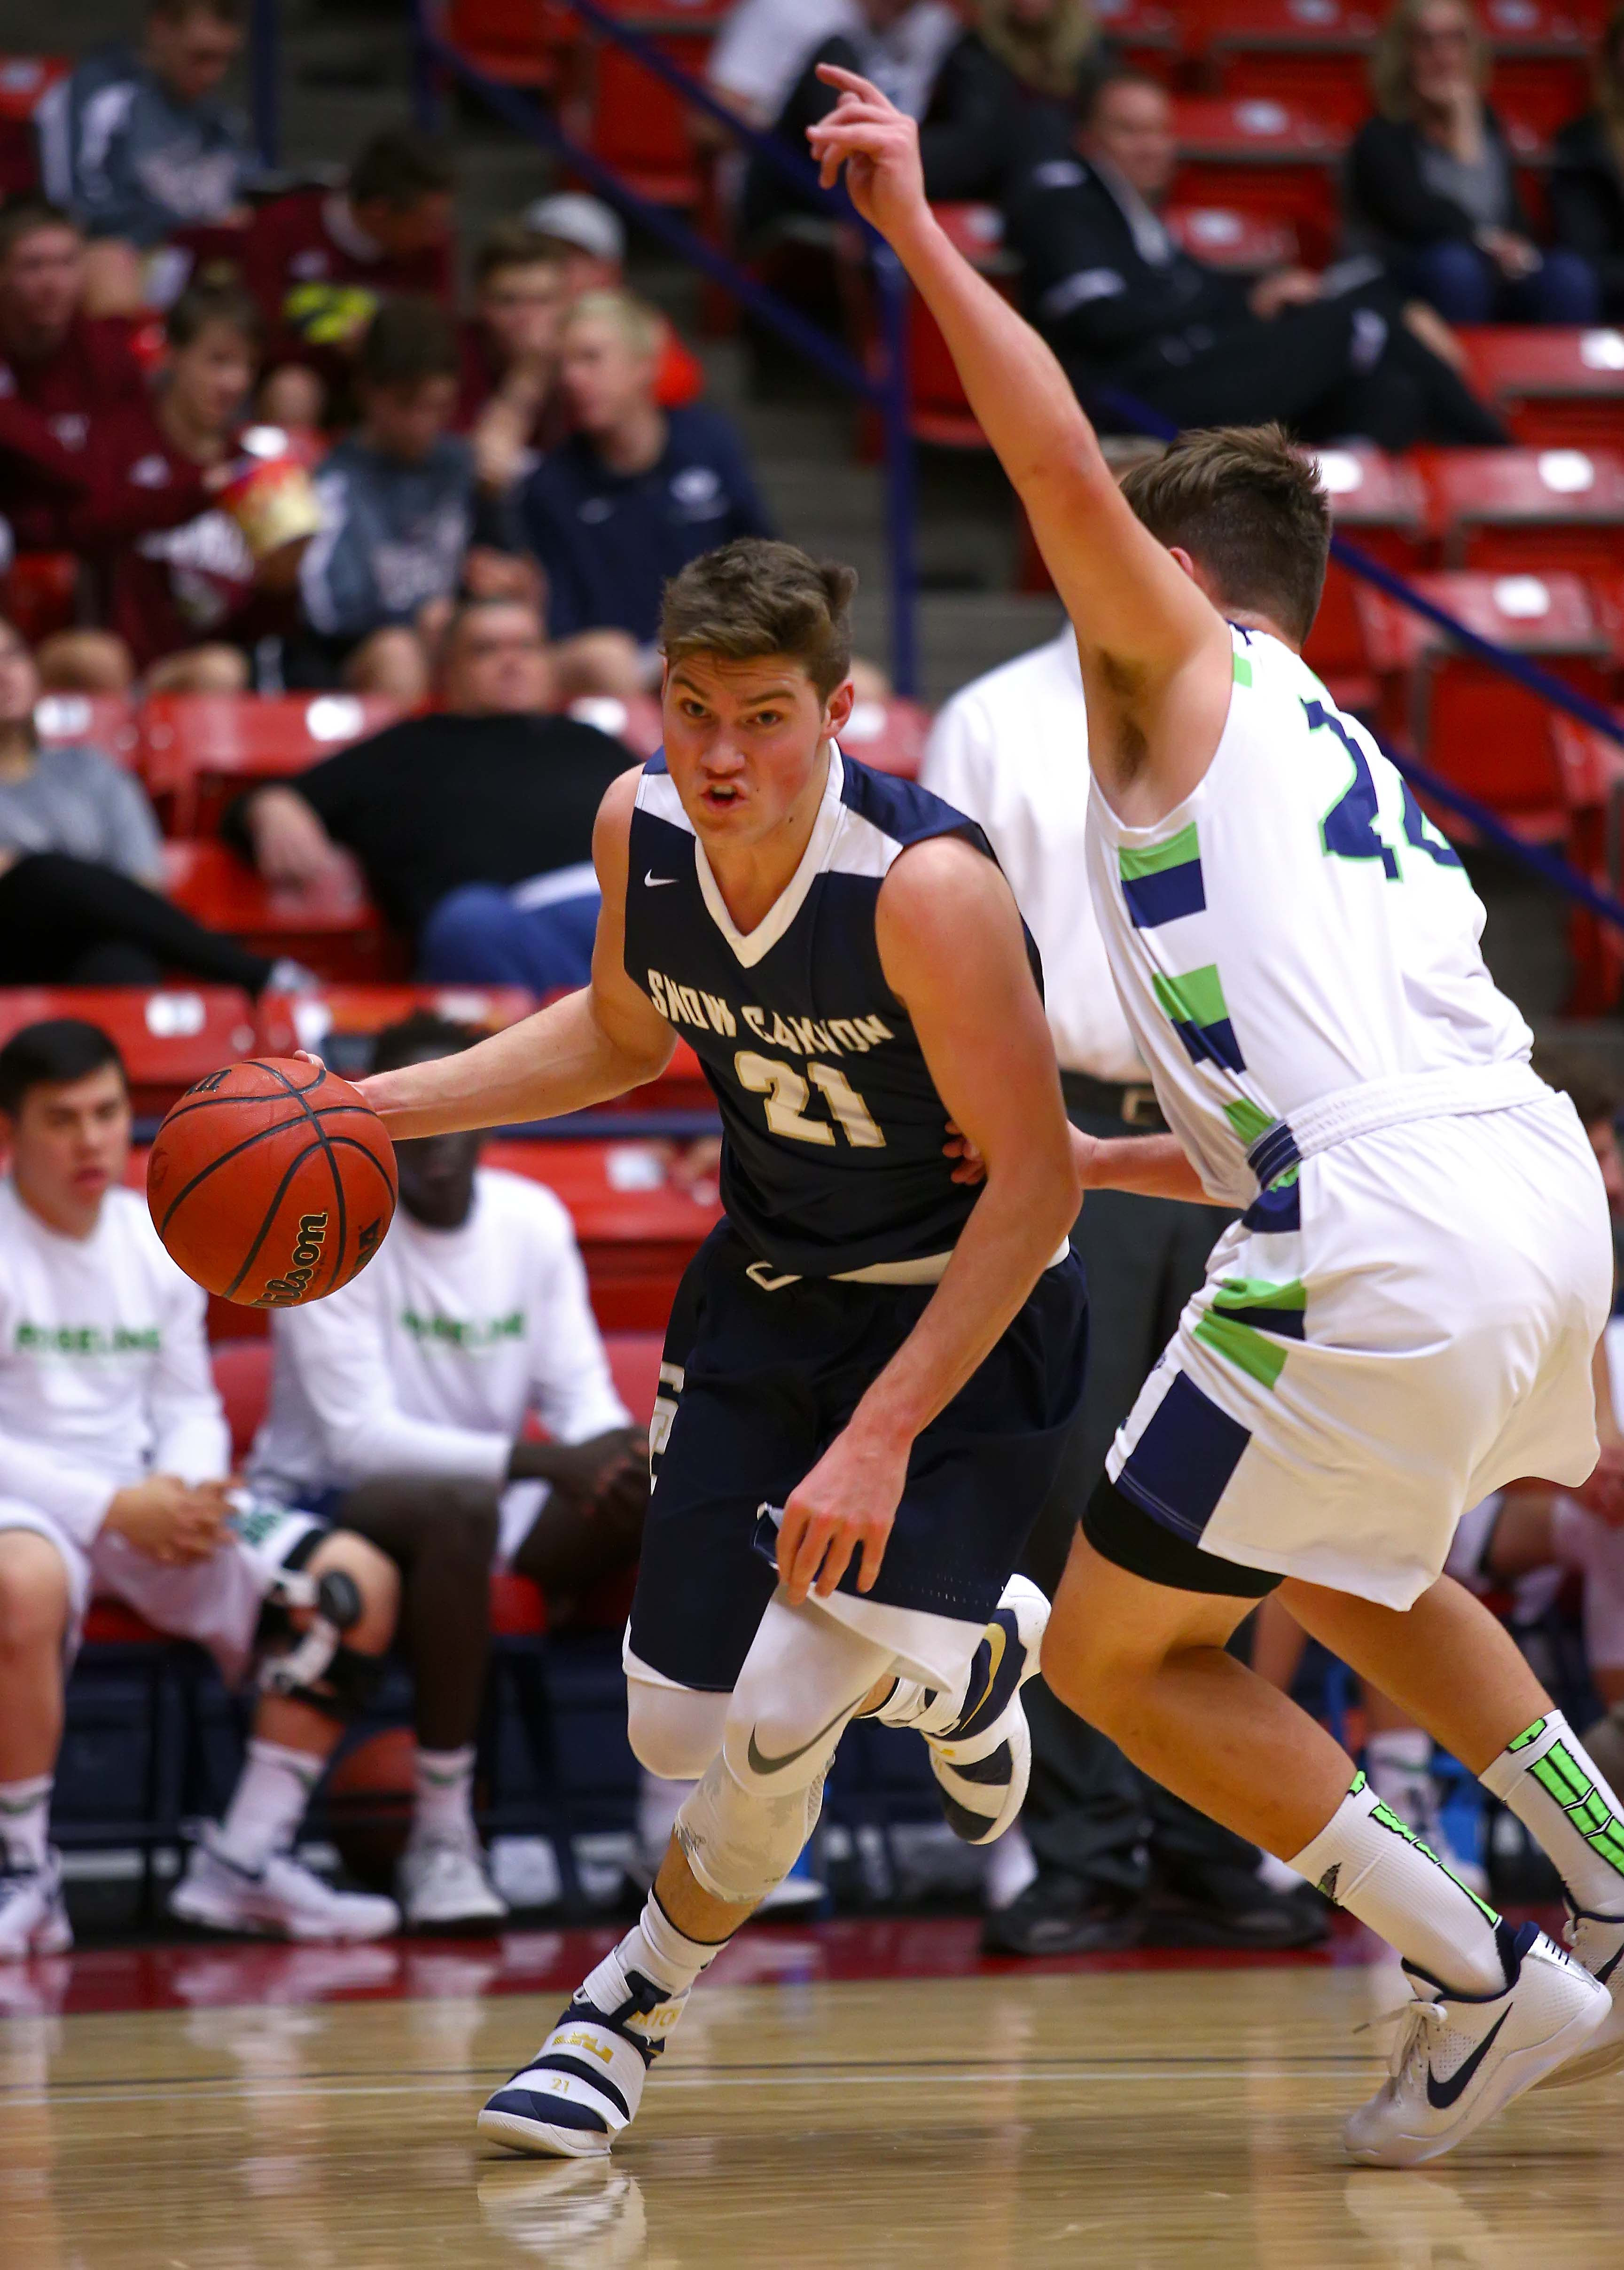 Snow Canyon's Bryson Childs (21), Snow Canyon vs. Ridgeline, Boys Basketball, St. George, Utah, Dec. 16, 2016, | Photo by Robert Hoppie, ASPpix.com, St. George News